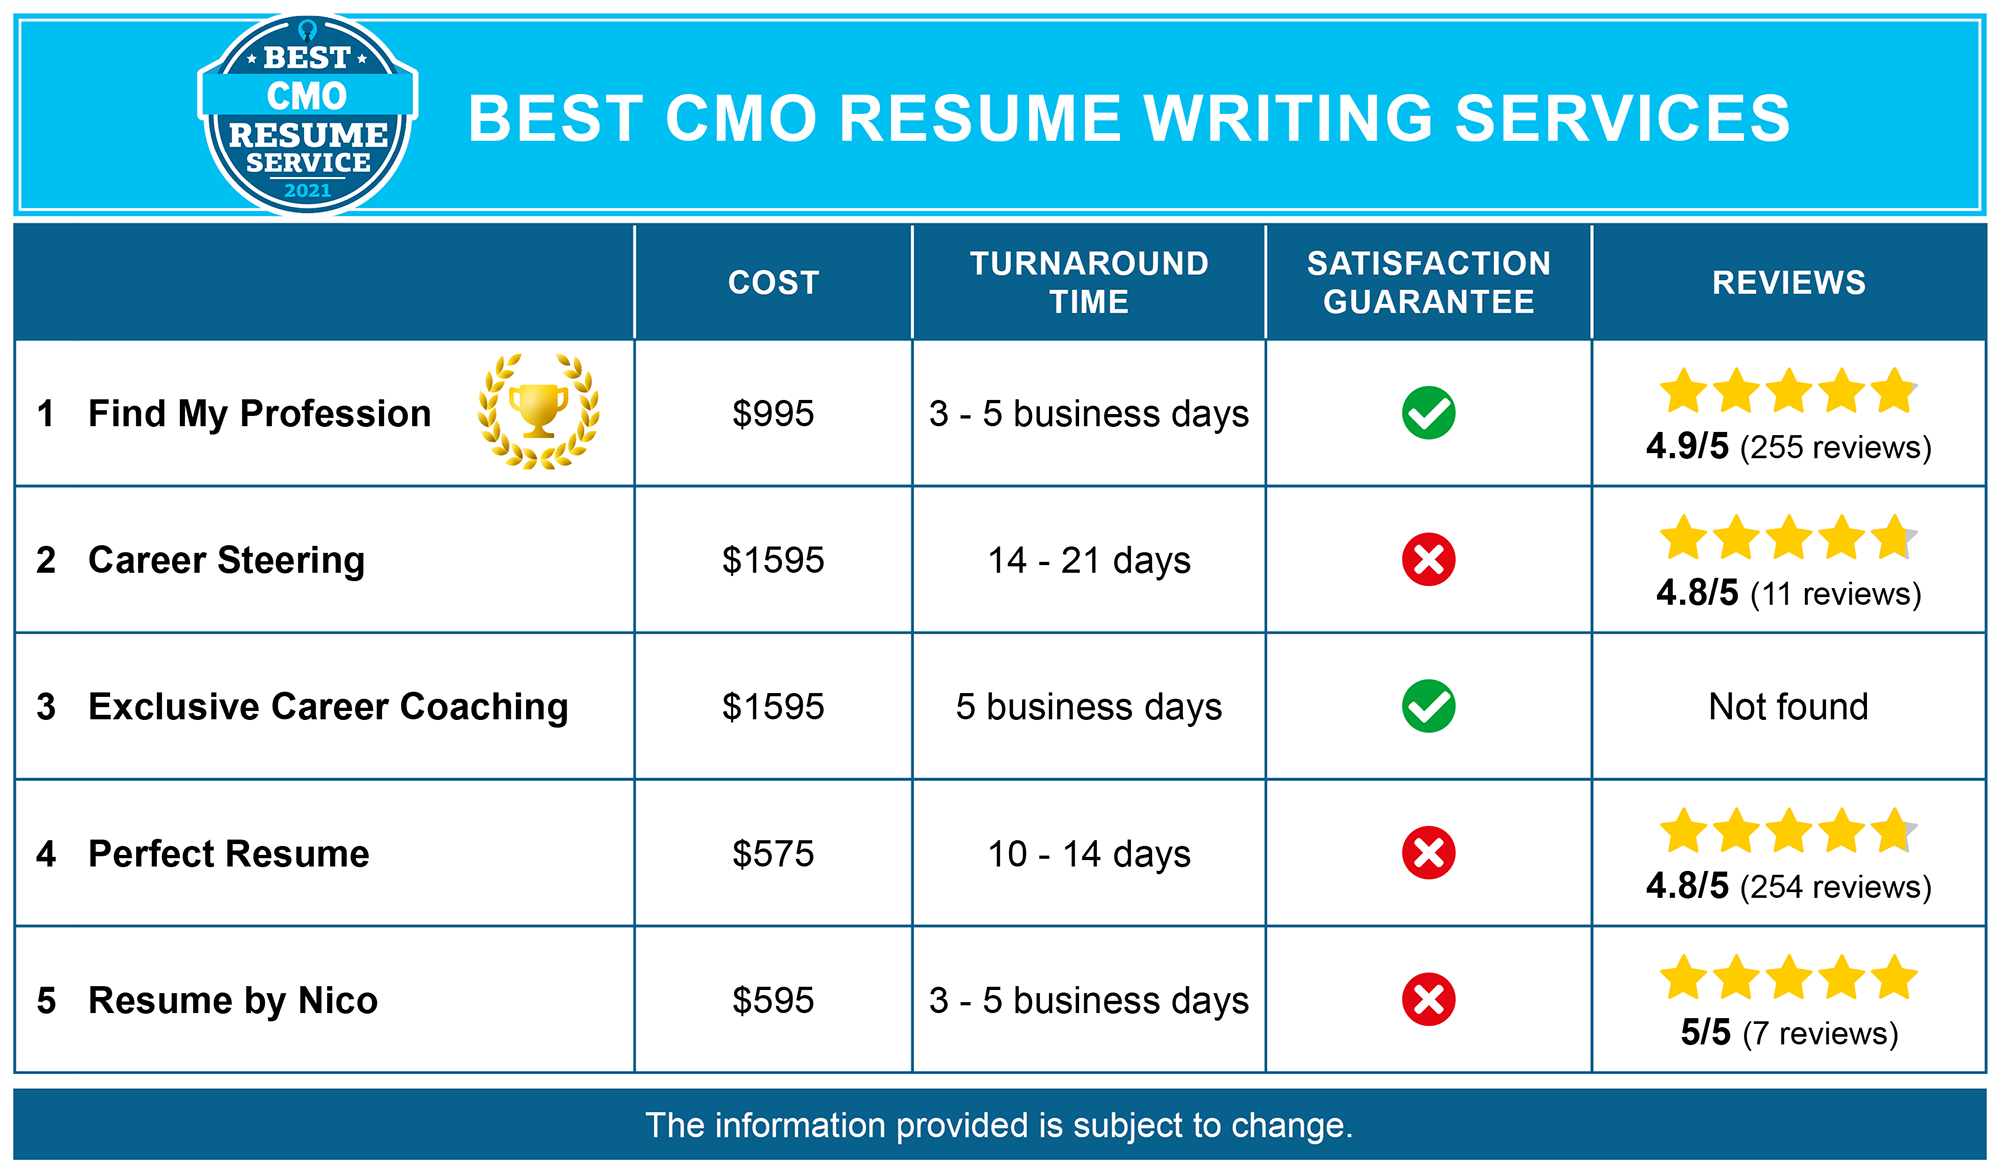 Best CMO Resume Services